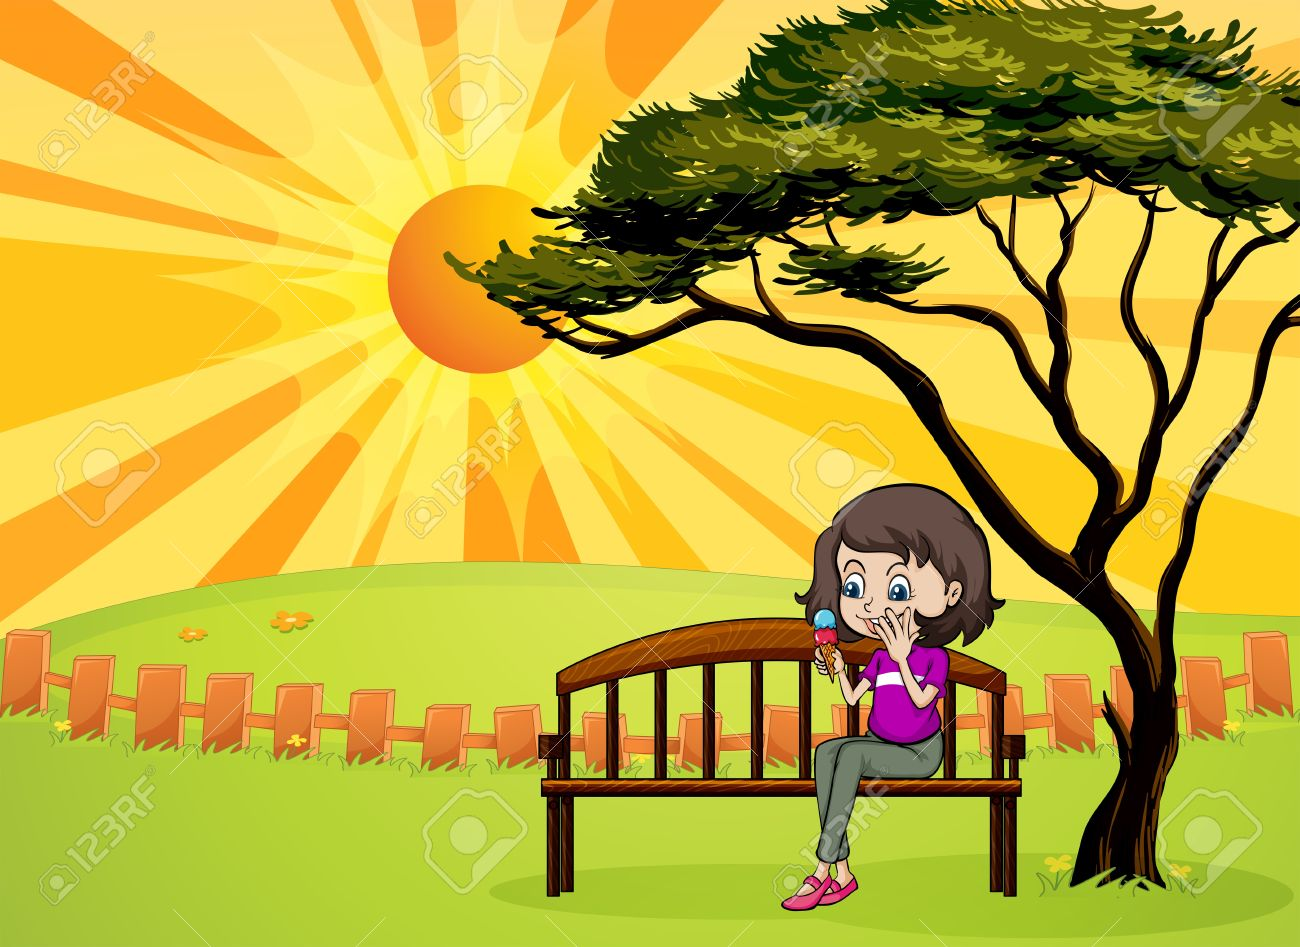 Illustration Of A Girl In The Park Sitting In The Wooden Bench.